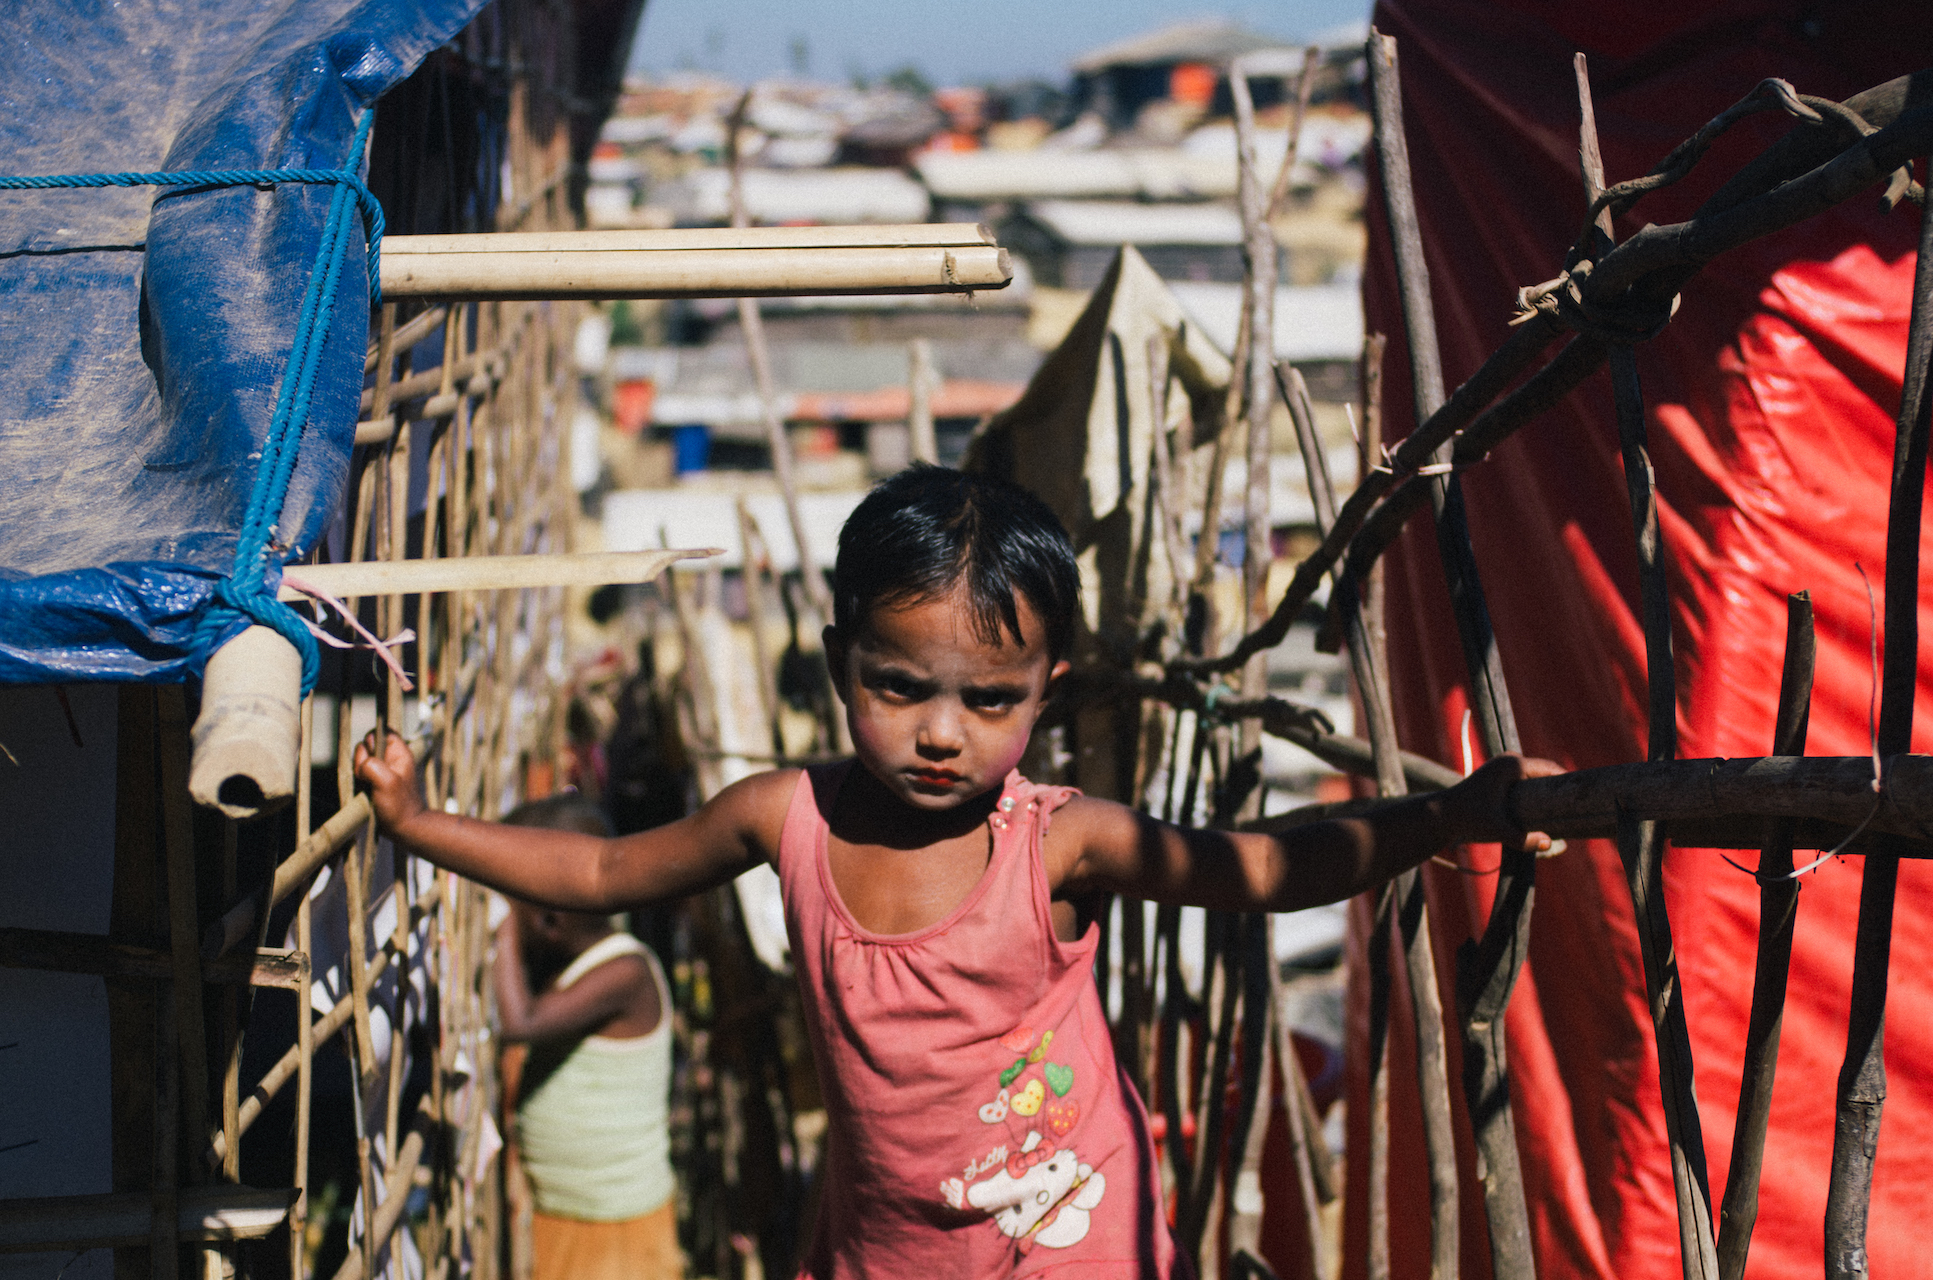 A child in Bangladesh's Rohingya refugee camps